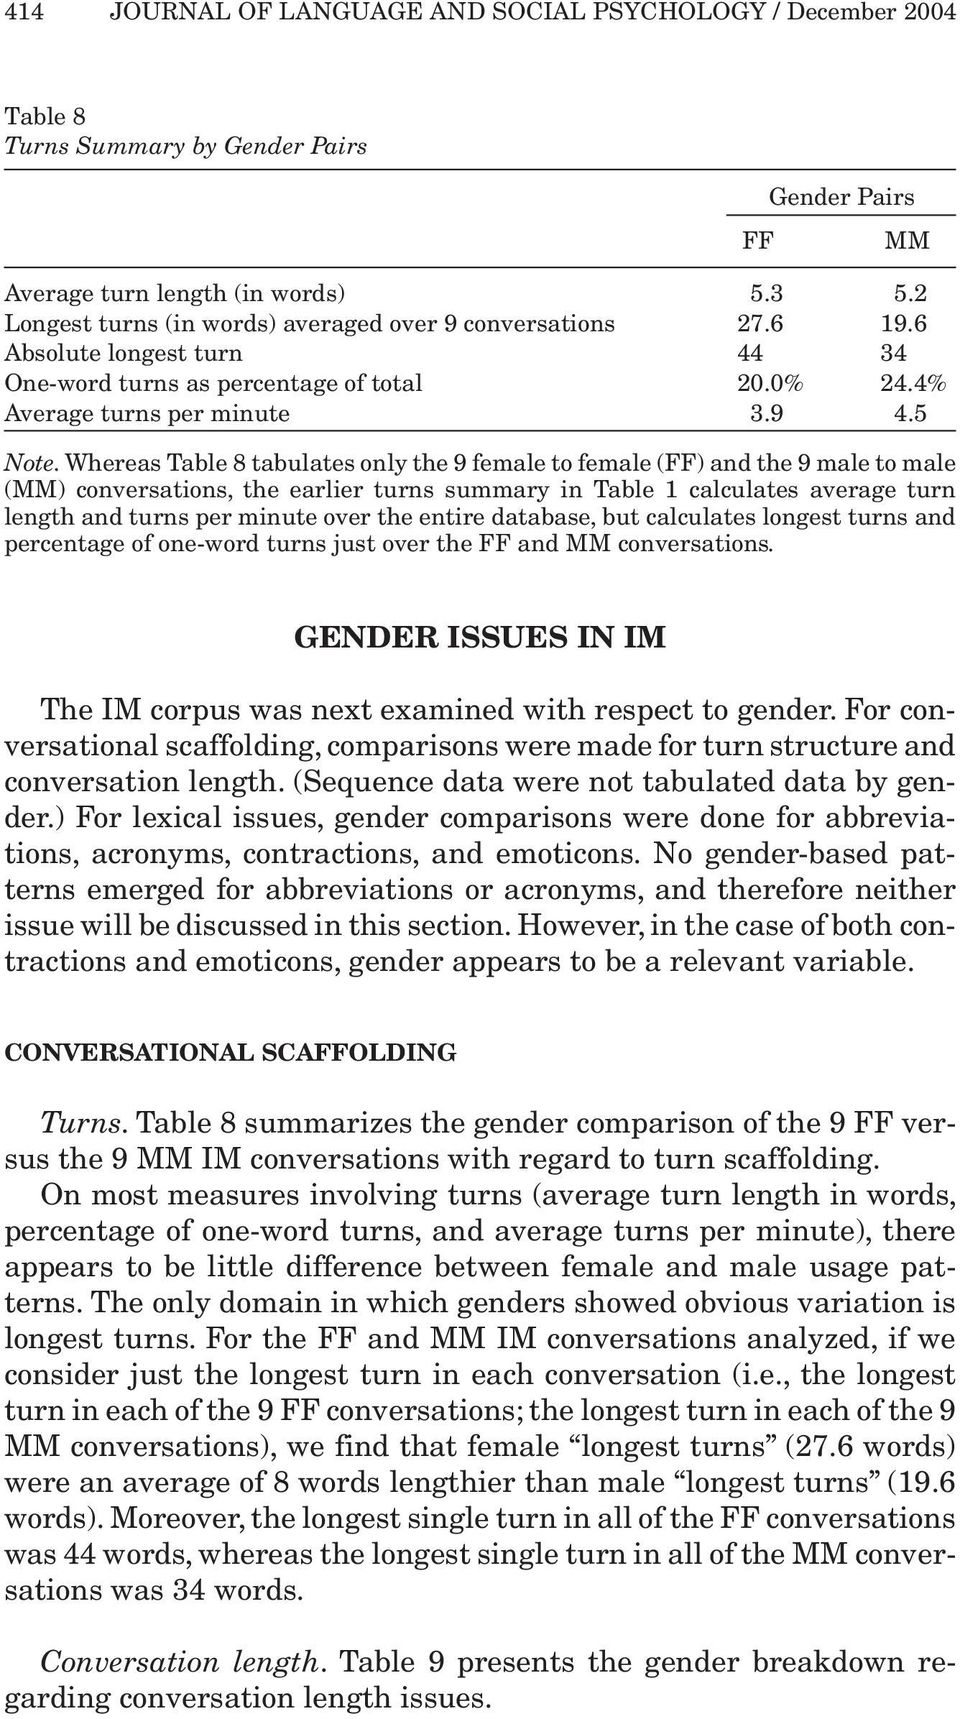 Whereas Table 8 tabulates only the 9 female to female (FF) and the 9 male to male (MM) conversations, the earlier turns summary in Table 1 calculates average turn length and turns per minute over the